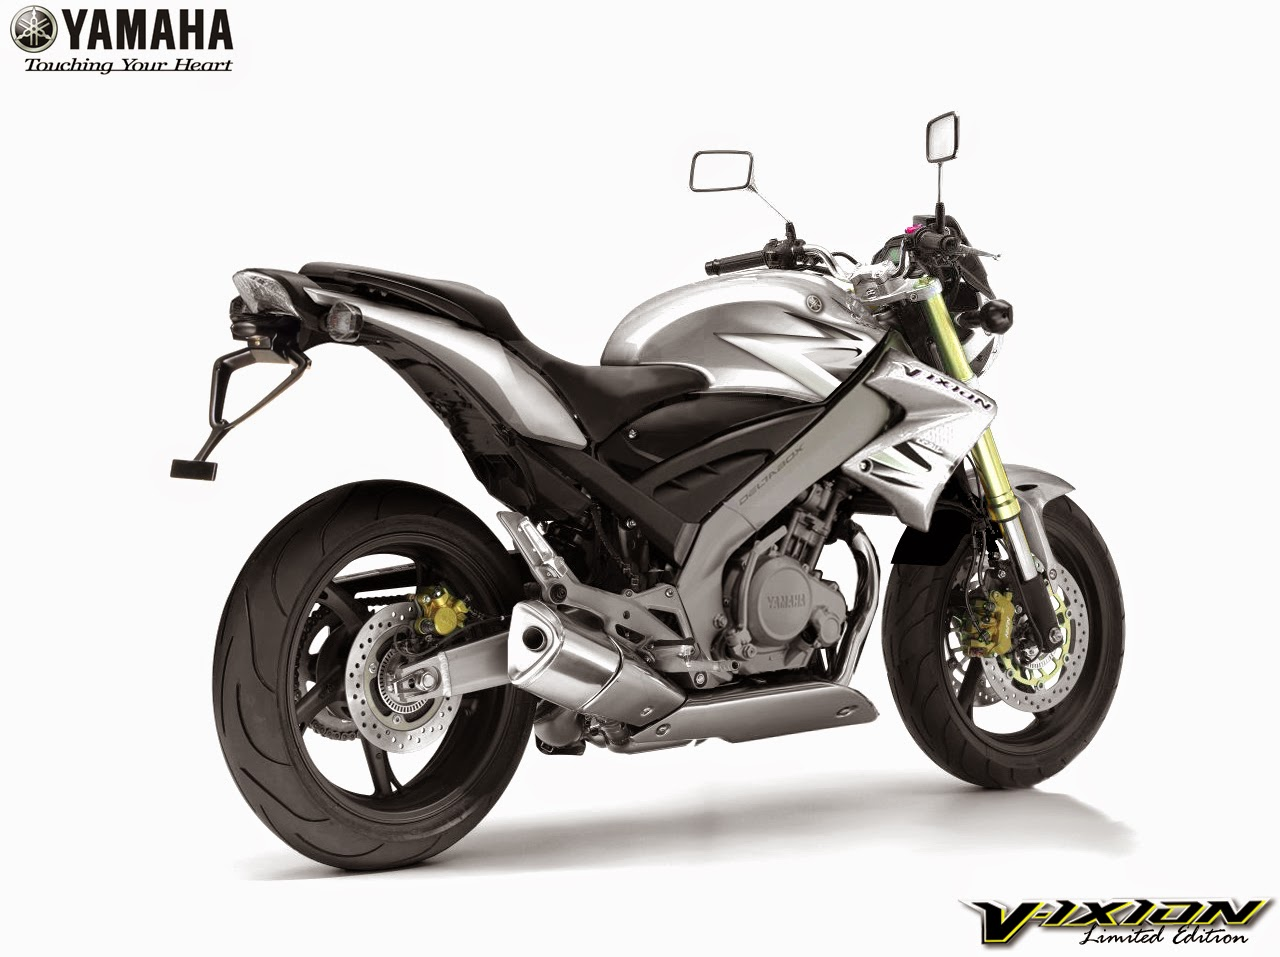 Supra X 125 R Modifikasi Touring